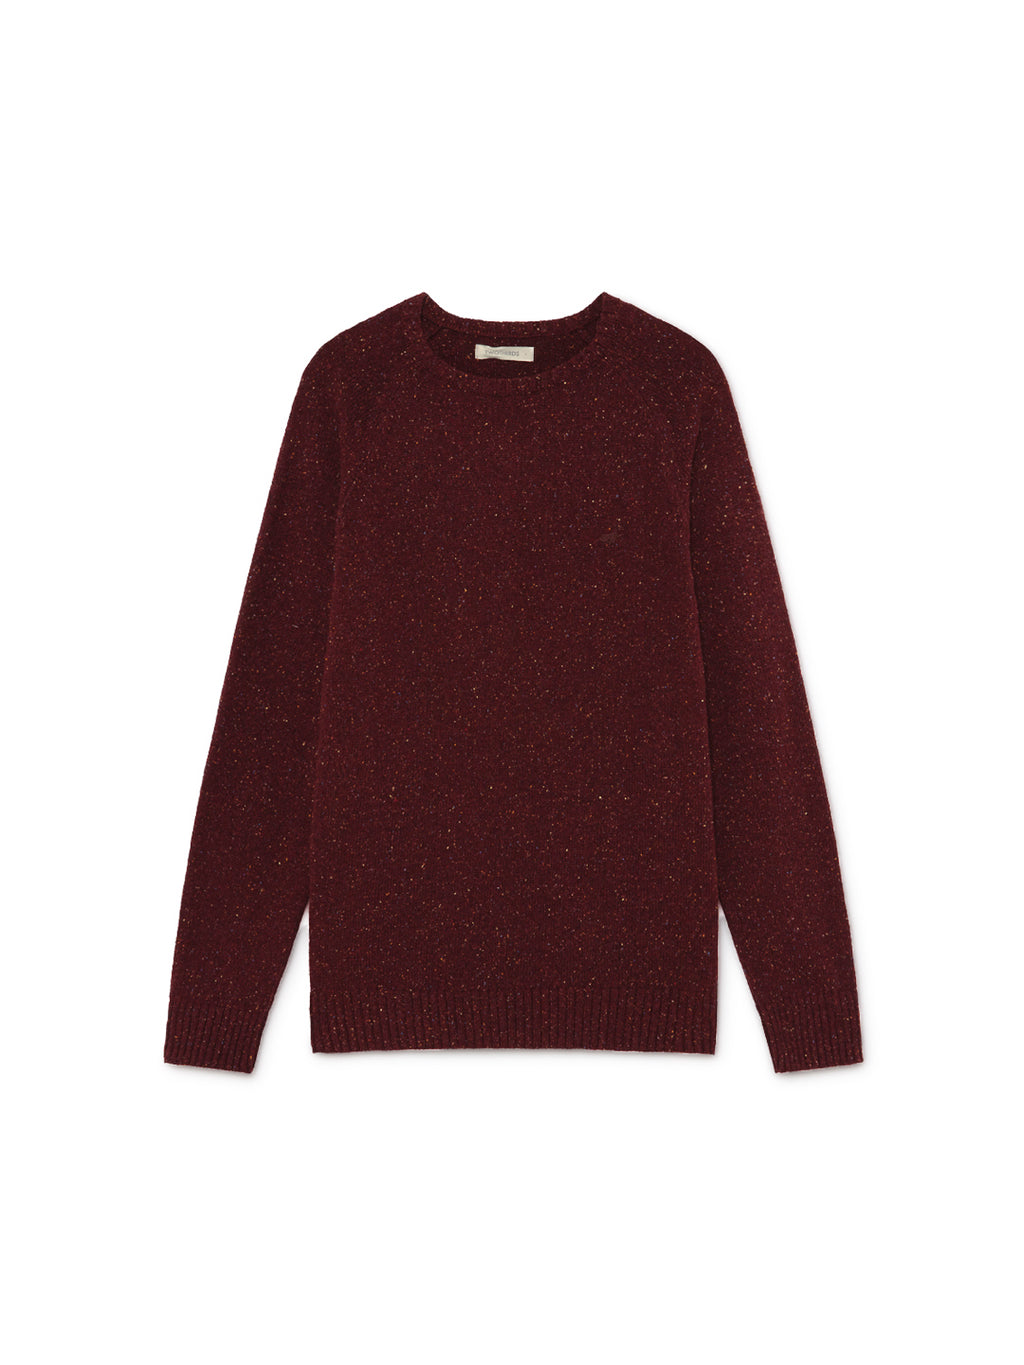 TWOTHIRDS Mens Knit: Dring - Burgundy front